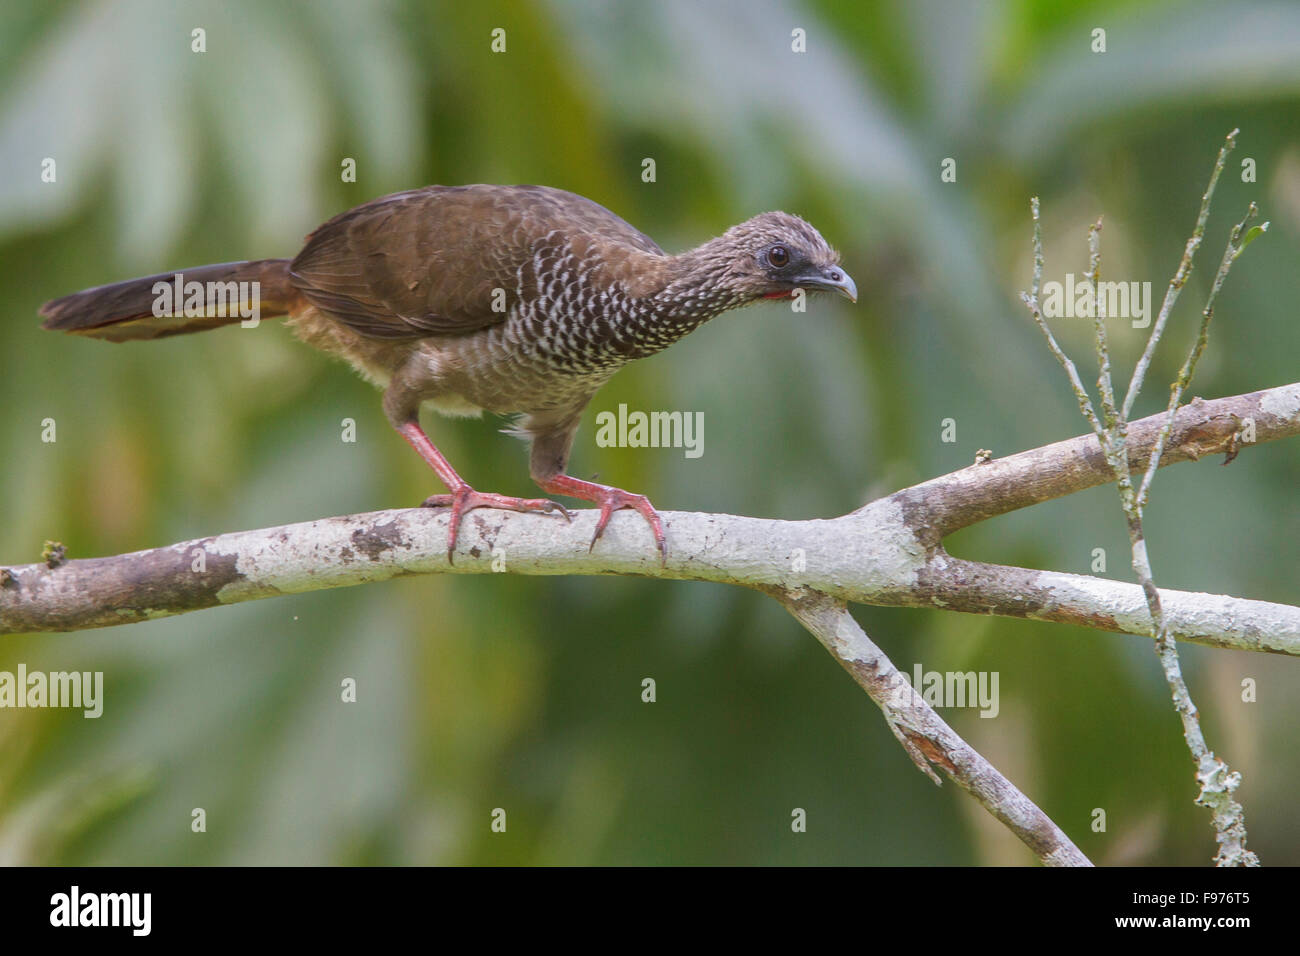 Speckled Chachalaca (Ortalis guttata) perched on a branch in Manu National Park, Peru. - Stock Image